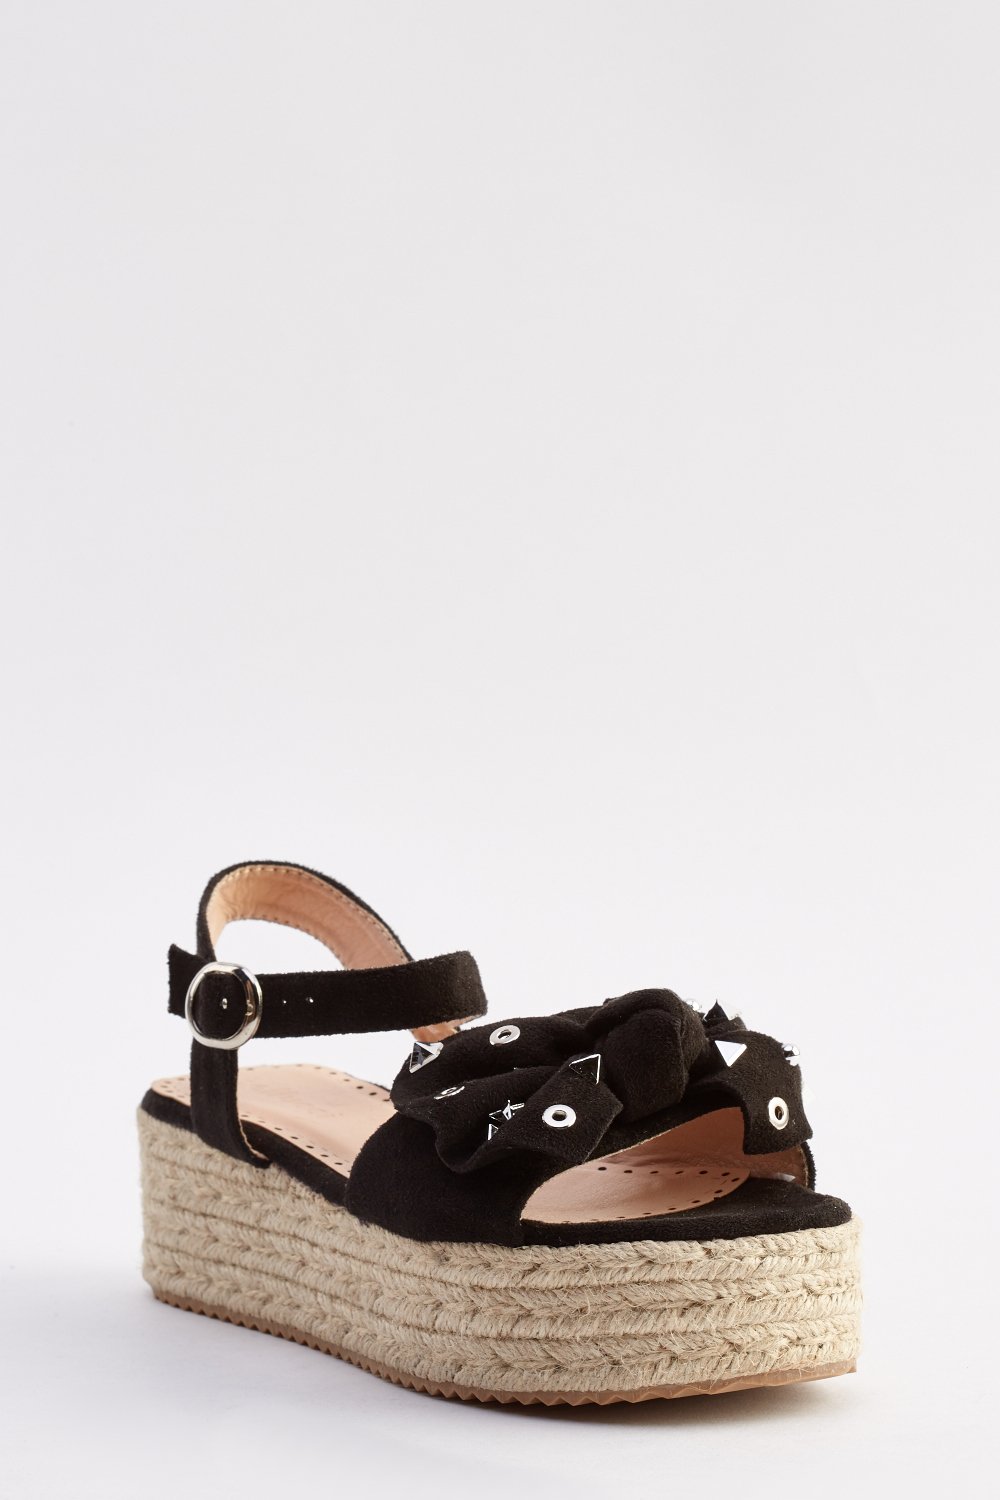 fd43b6182541 Studded Bow Platform Espadrille Sandals - Just £5